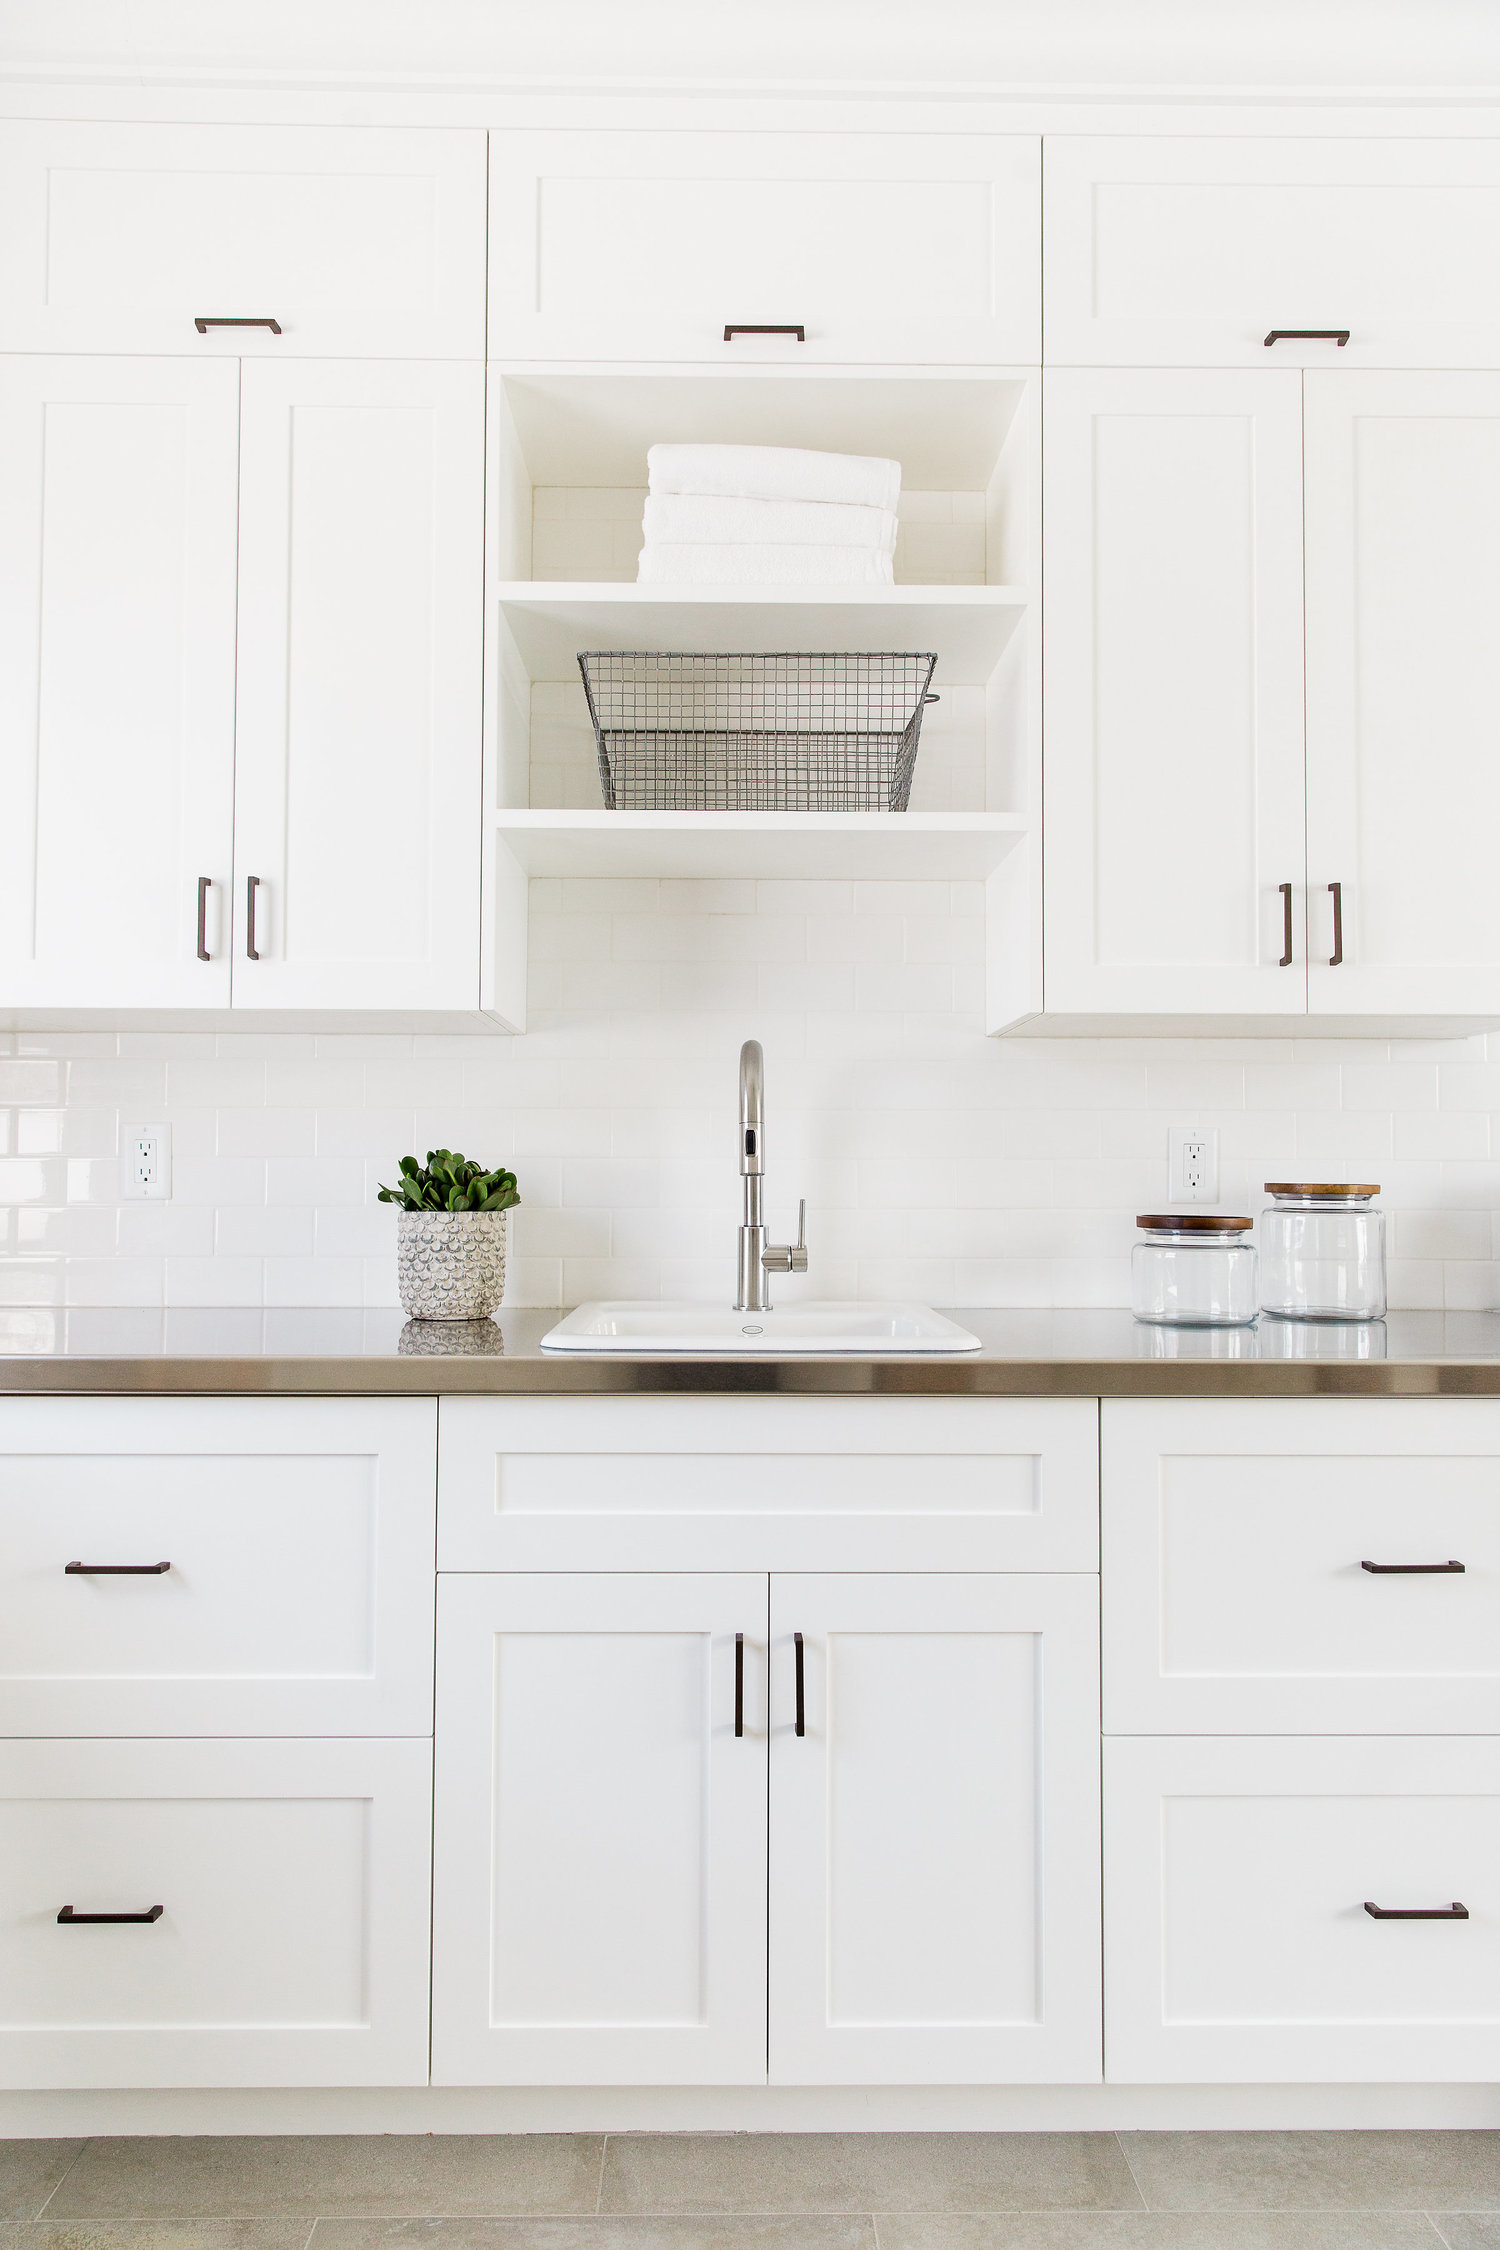 White kitchen cabinets with large sink